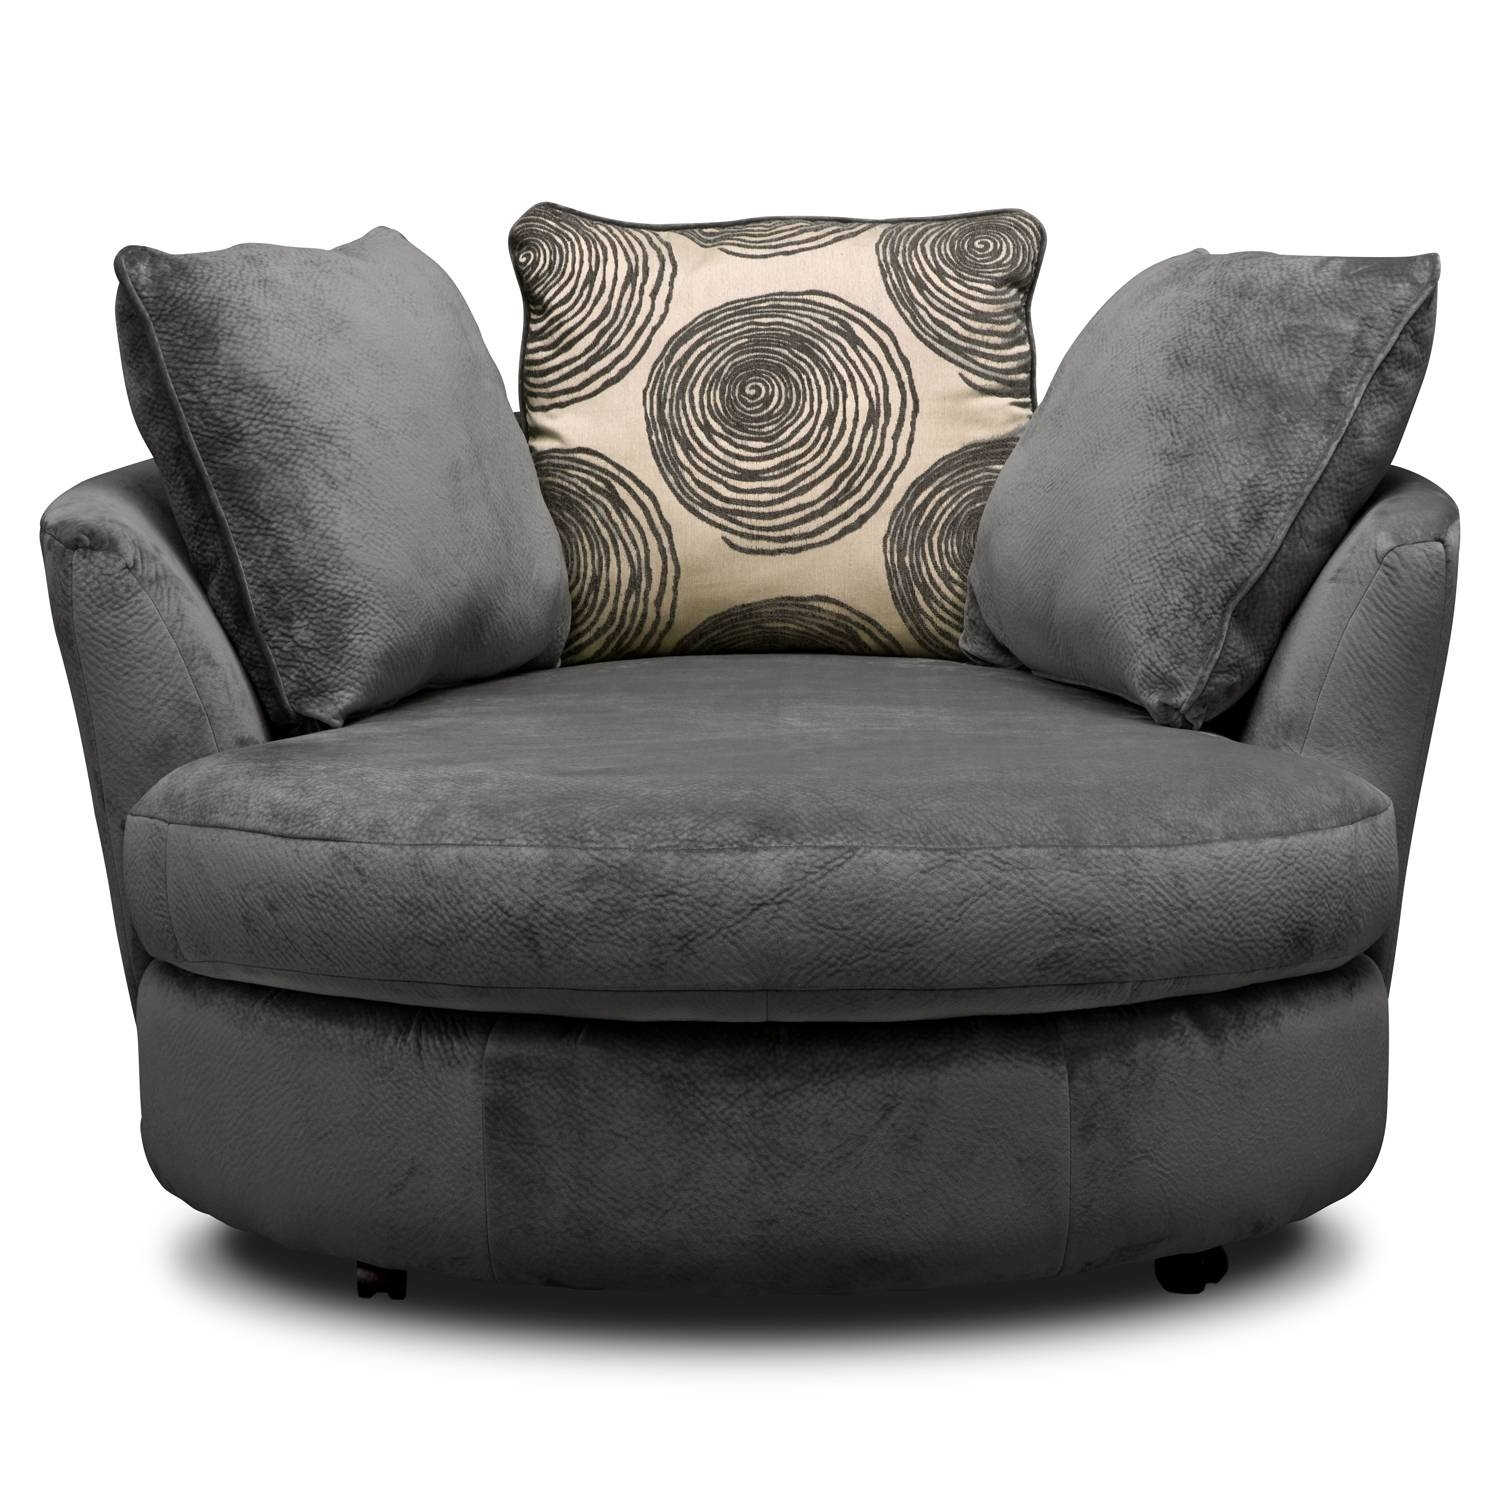 Lovely Swivel Sofa Chair 45 On Living Room Sofa Inspiration With regarding Sofa With Swivel Chair (Image 22 of 30)